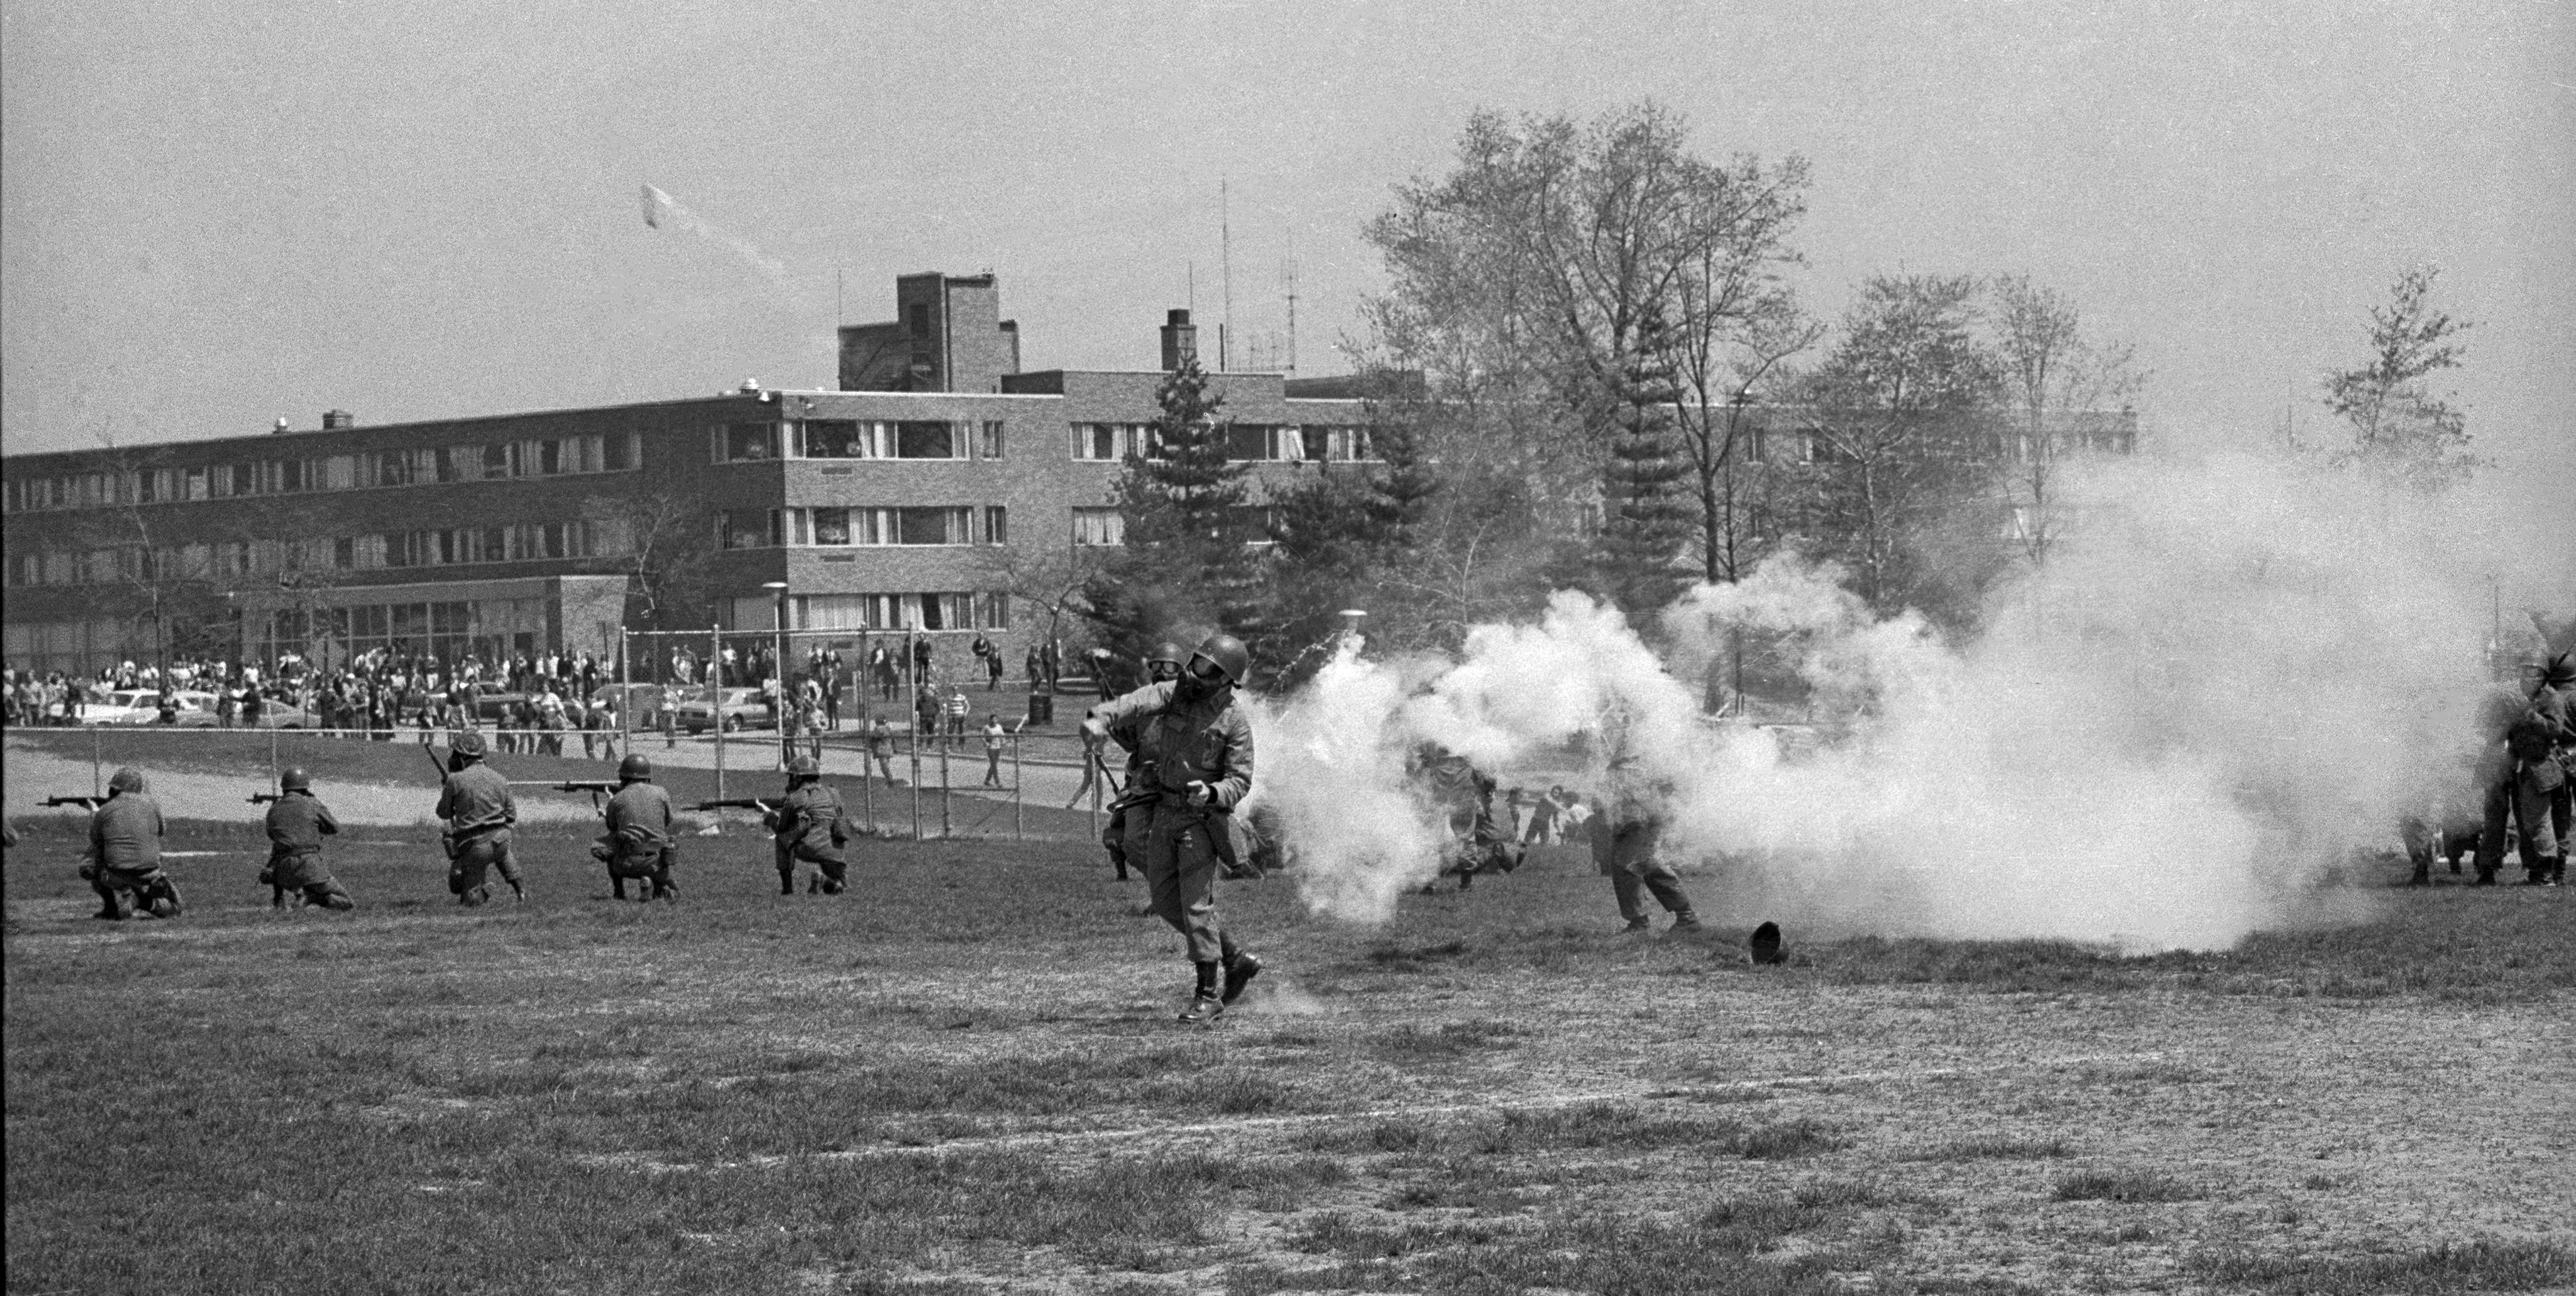 An Ohio National Guardsmen throws a tear gas canister toward protesters at Kent State.